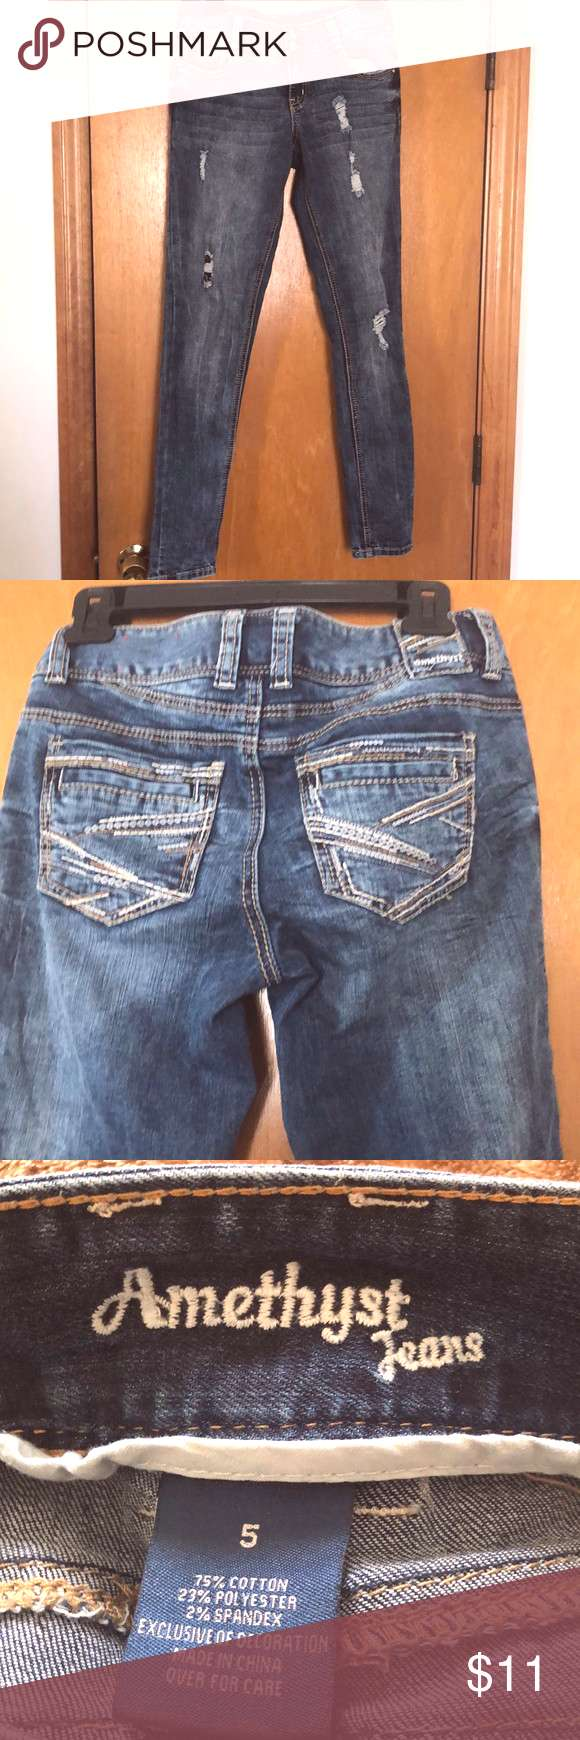 Juniors amethyst jeans size 5 ripped skinny Junior size 5 amethyst Jeans ripped Amethyst Jeans Pant